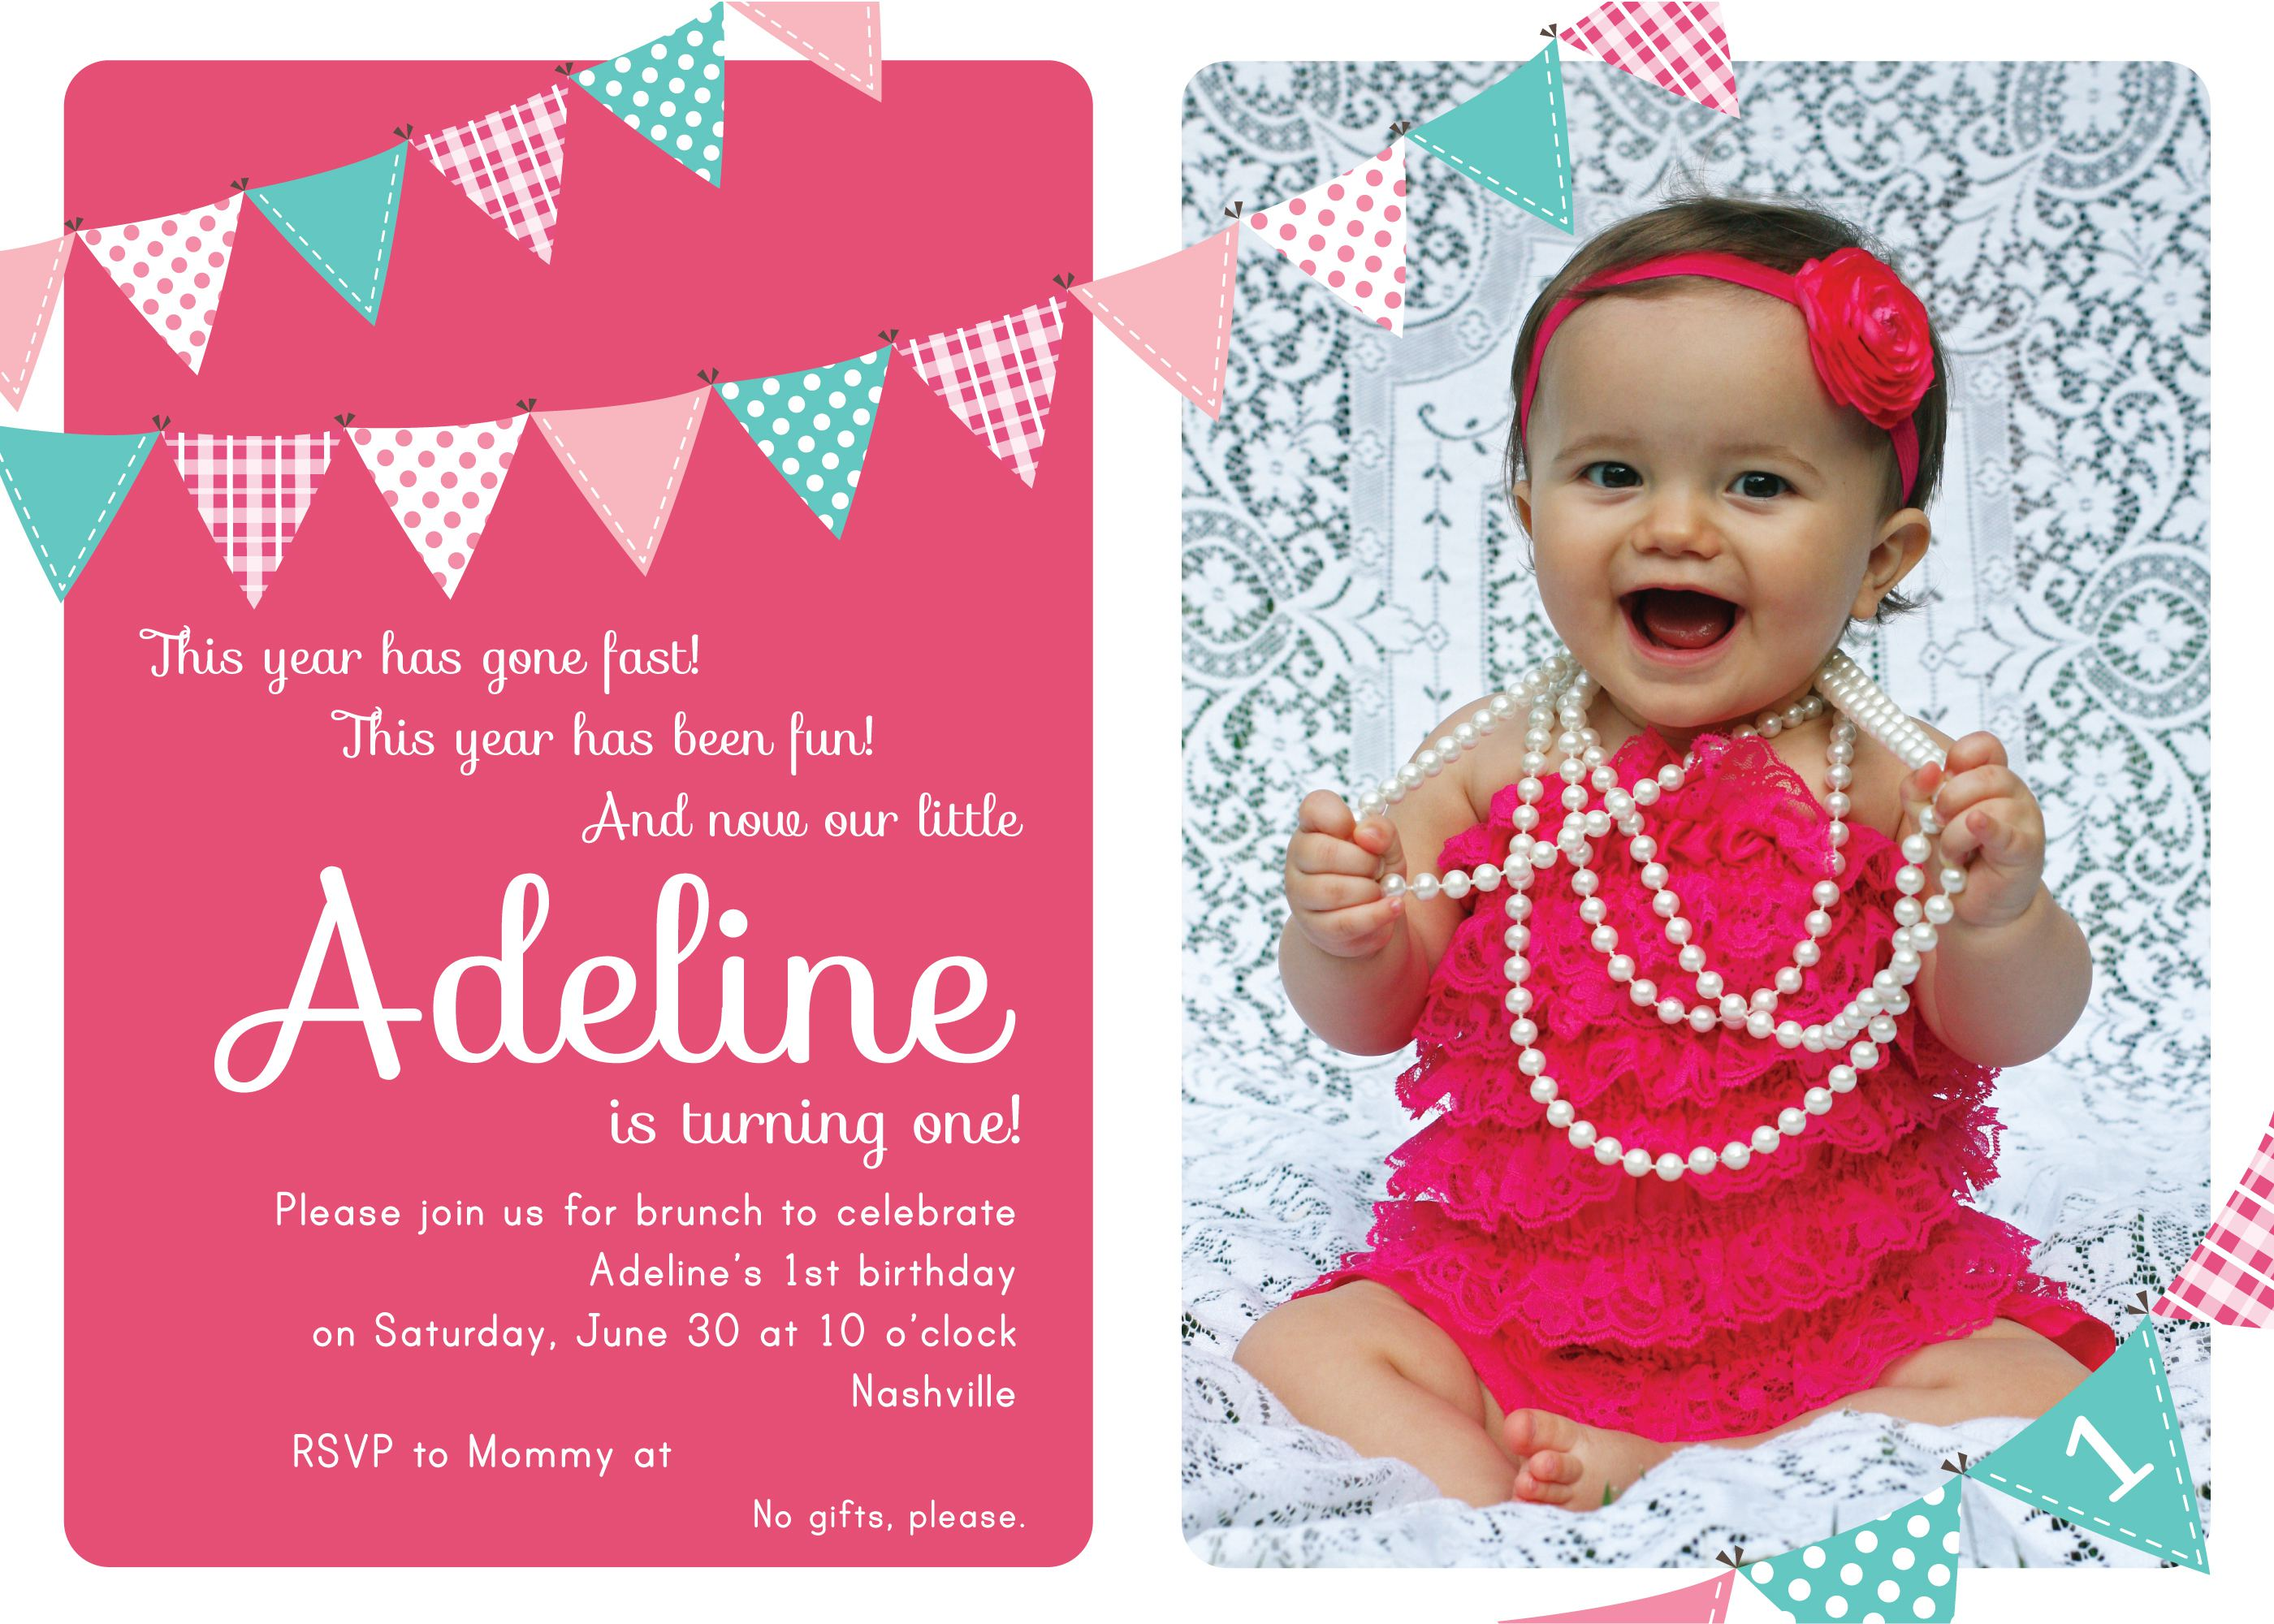 first birthday invitation letter ; ideas-of-baptism-invitation-sample-wording-stunning-how-to-write-invitation-letter-for-1st-birthday-party-of-how-to-write-invitation-letter-for-1st-birthday-party